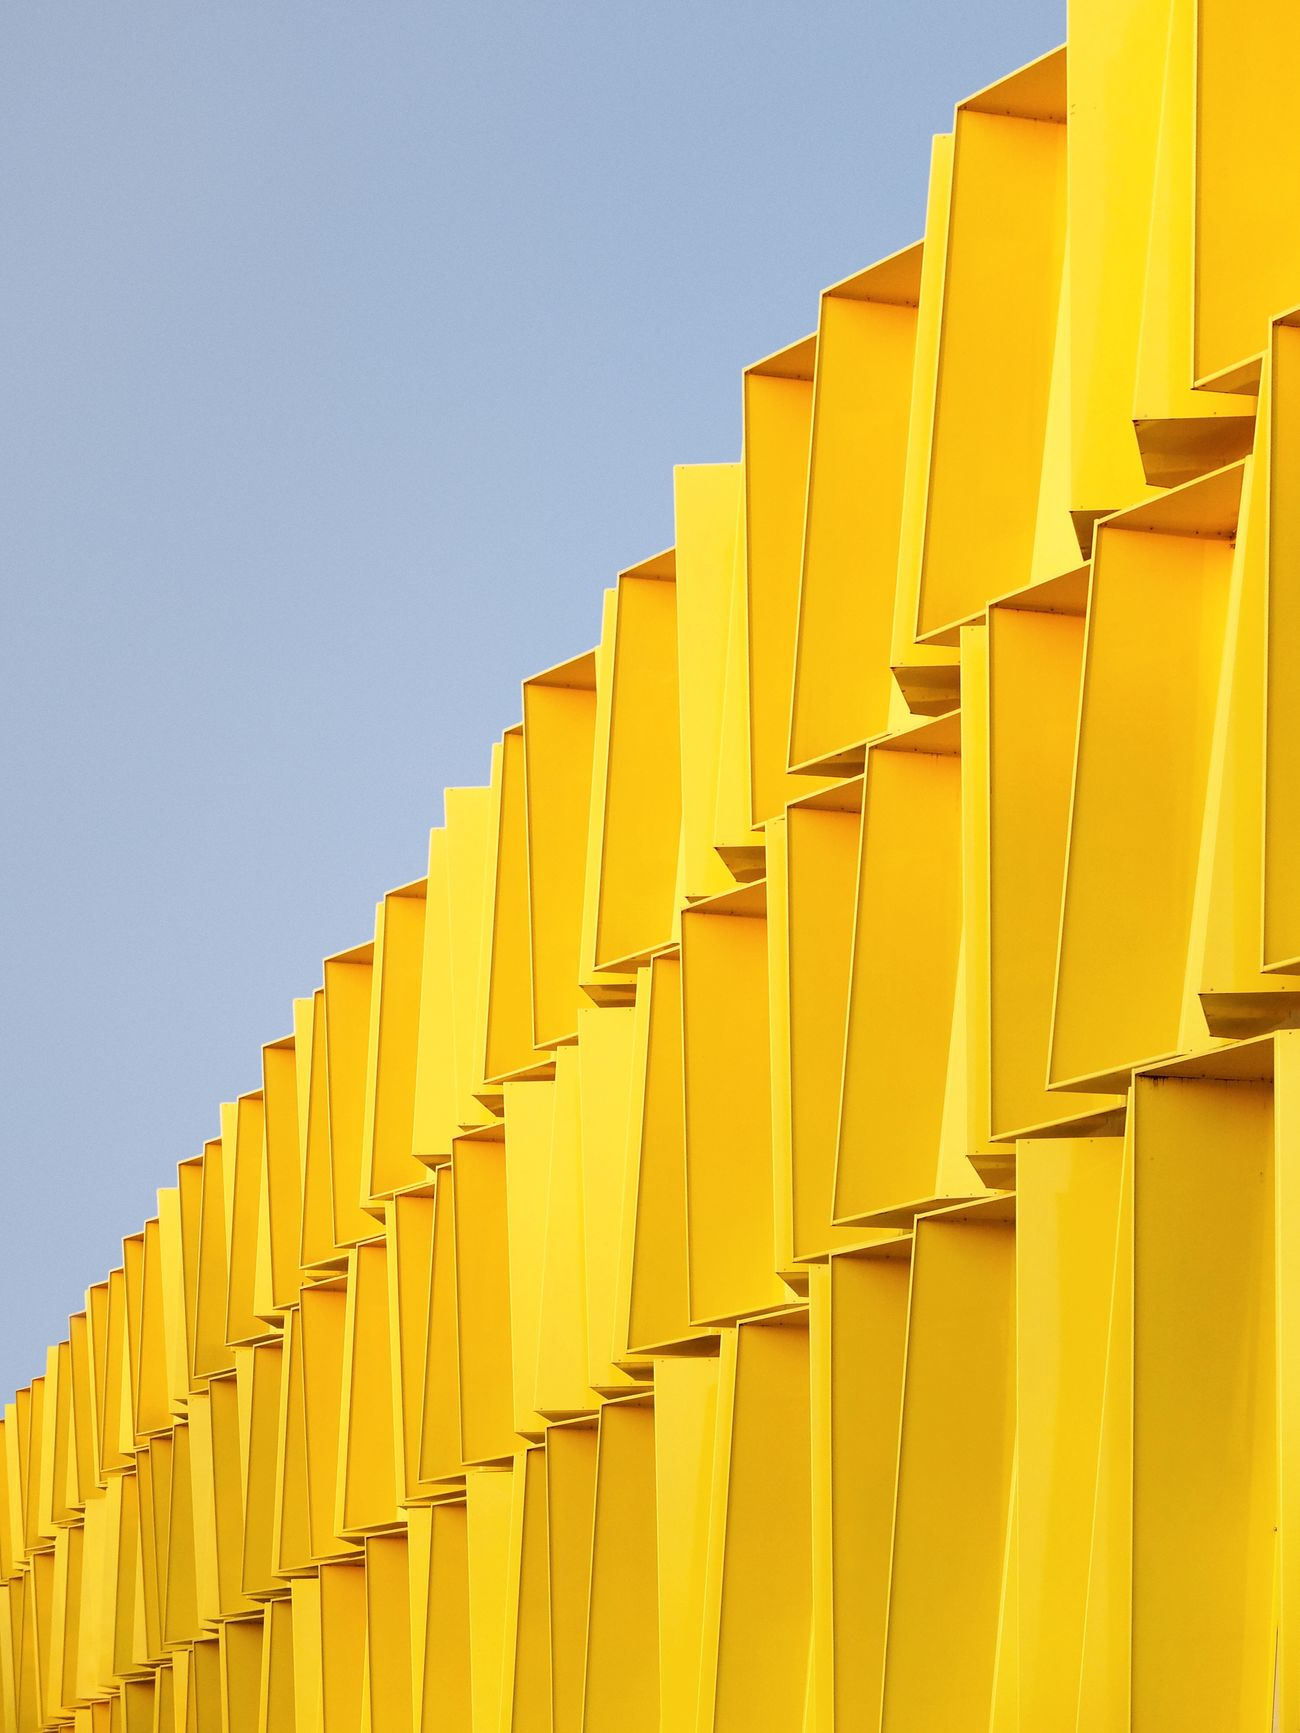 Yellow Low Angle View Built Structure Building Exterior Architecture EyeEmBestPics EyeEm Best Edits EyeEm Best Shots TheWeekOnEyeEM FujiFilm X20 Textures And Surfaces Sunlight And Shadow Minimalism Minimalist Minimal Minimalobsession Architecture Architectural Feature Architecture_collection Architectural Detail Façade